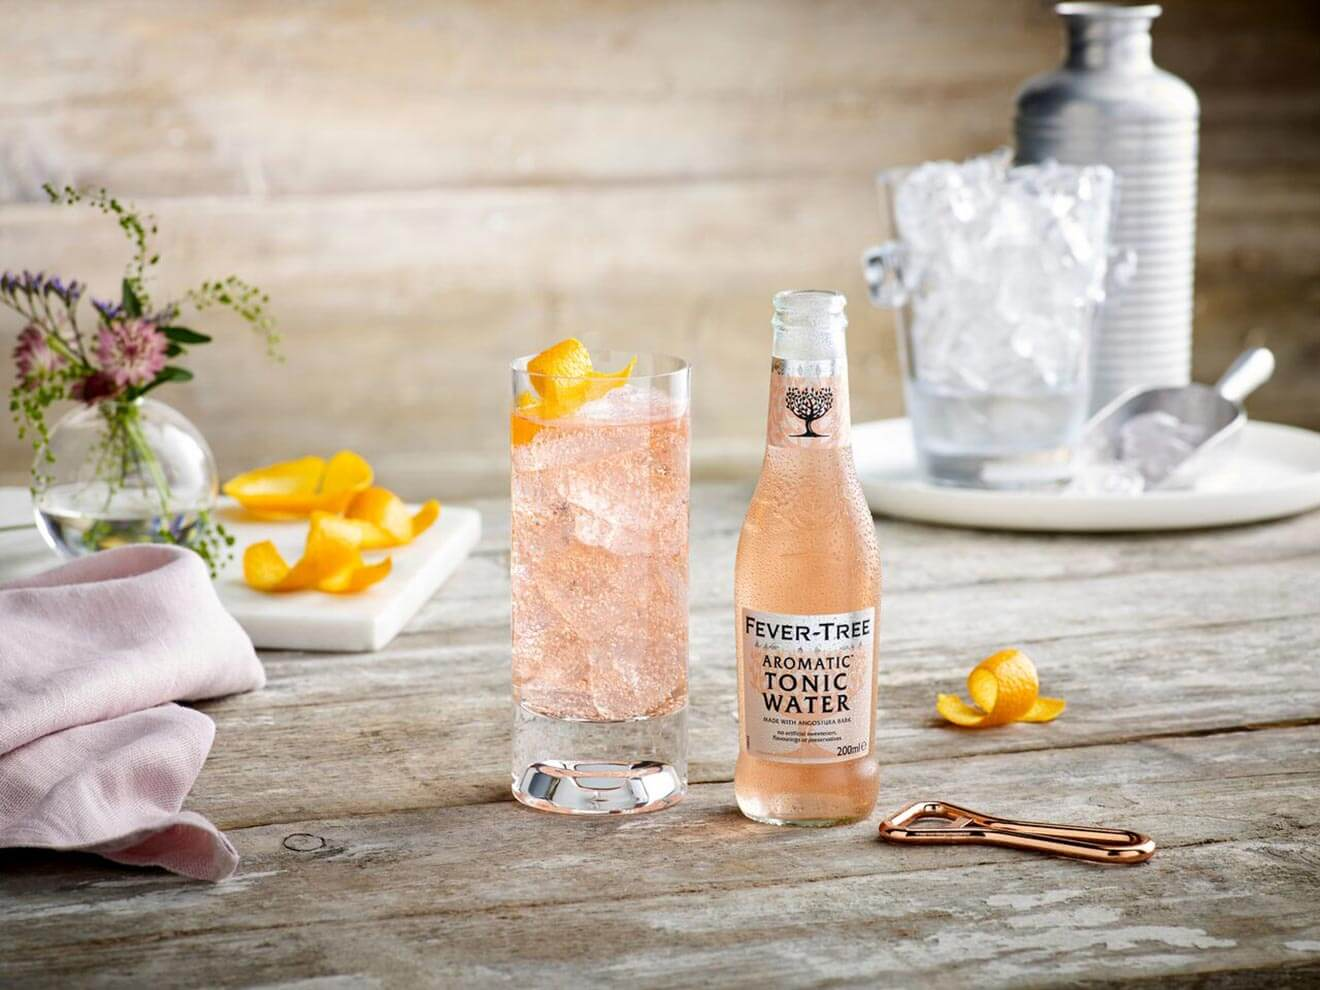 Fever Tree Pink Aromatic Tonic, bottle and glass with garnishes